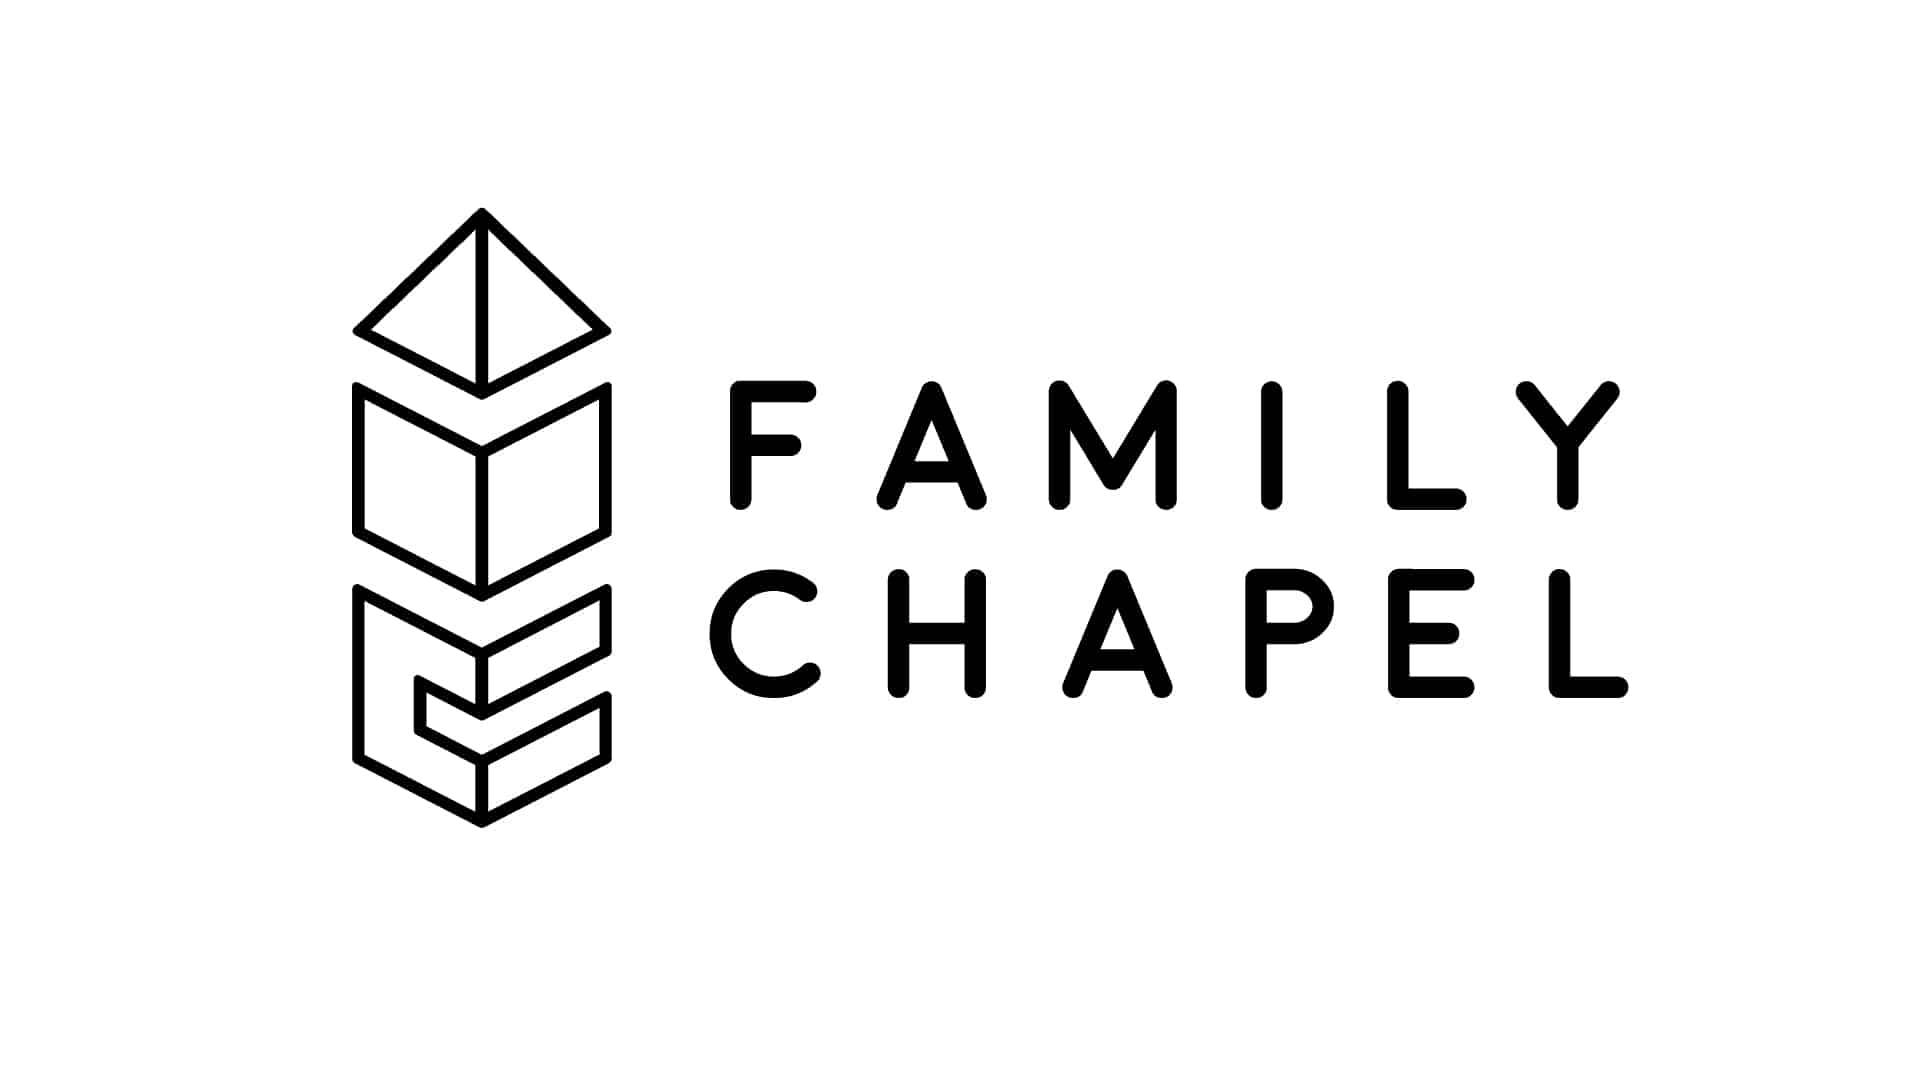 OMC: Family Chapel